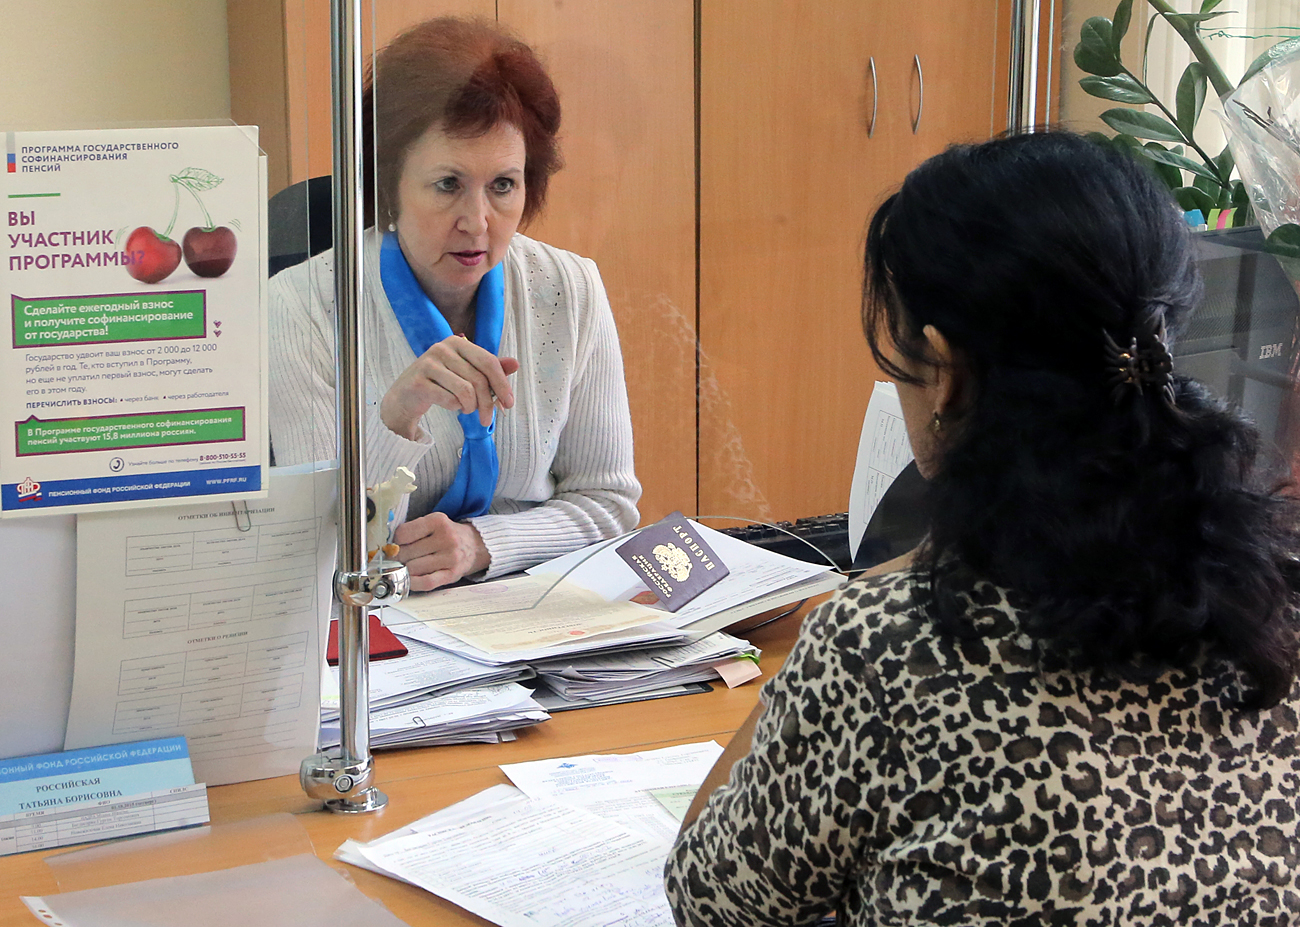 The Central Bank hopes that the proposal will make it possible to improve pension funds' return performance. Photo: An employee serves a patron in the Pension Fund's Main Directorate in Moscow, Russia.